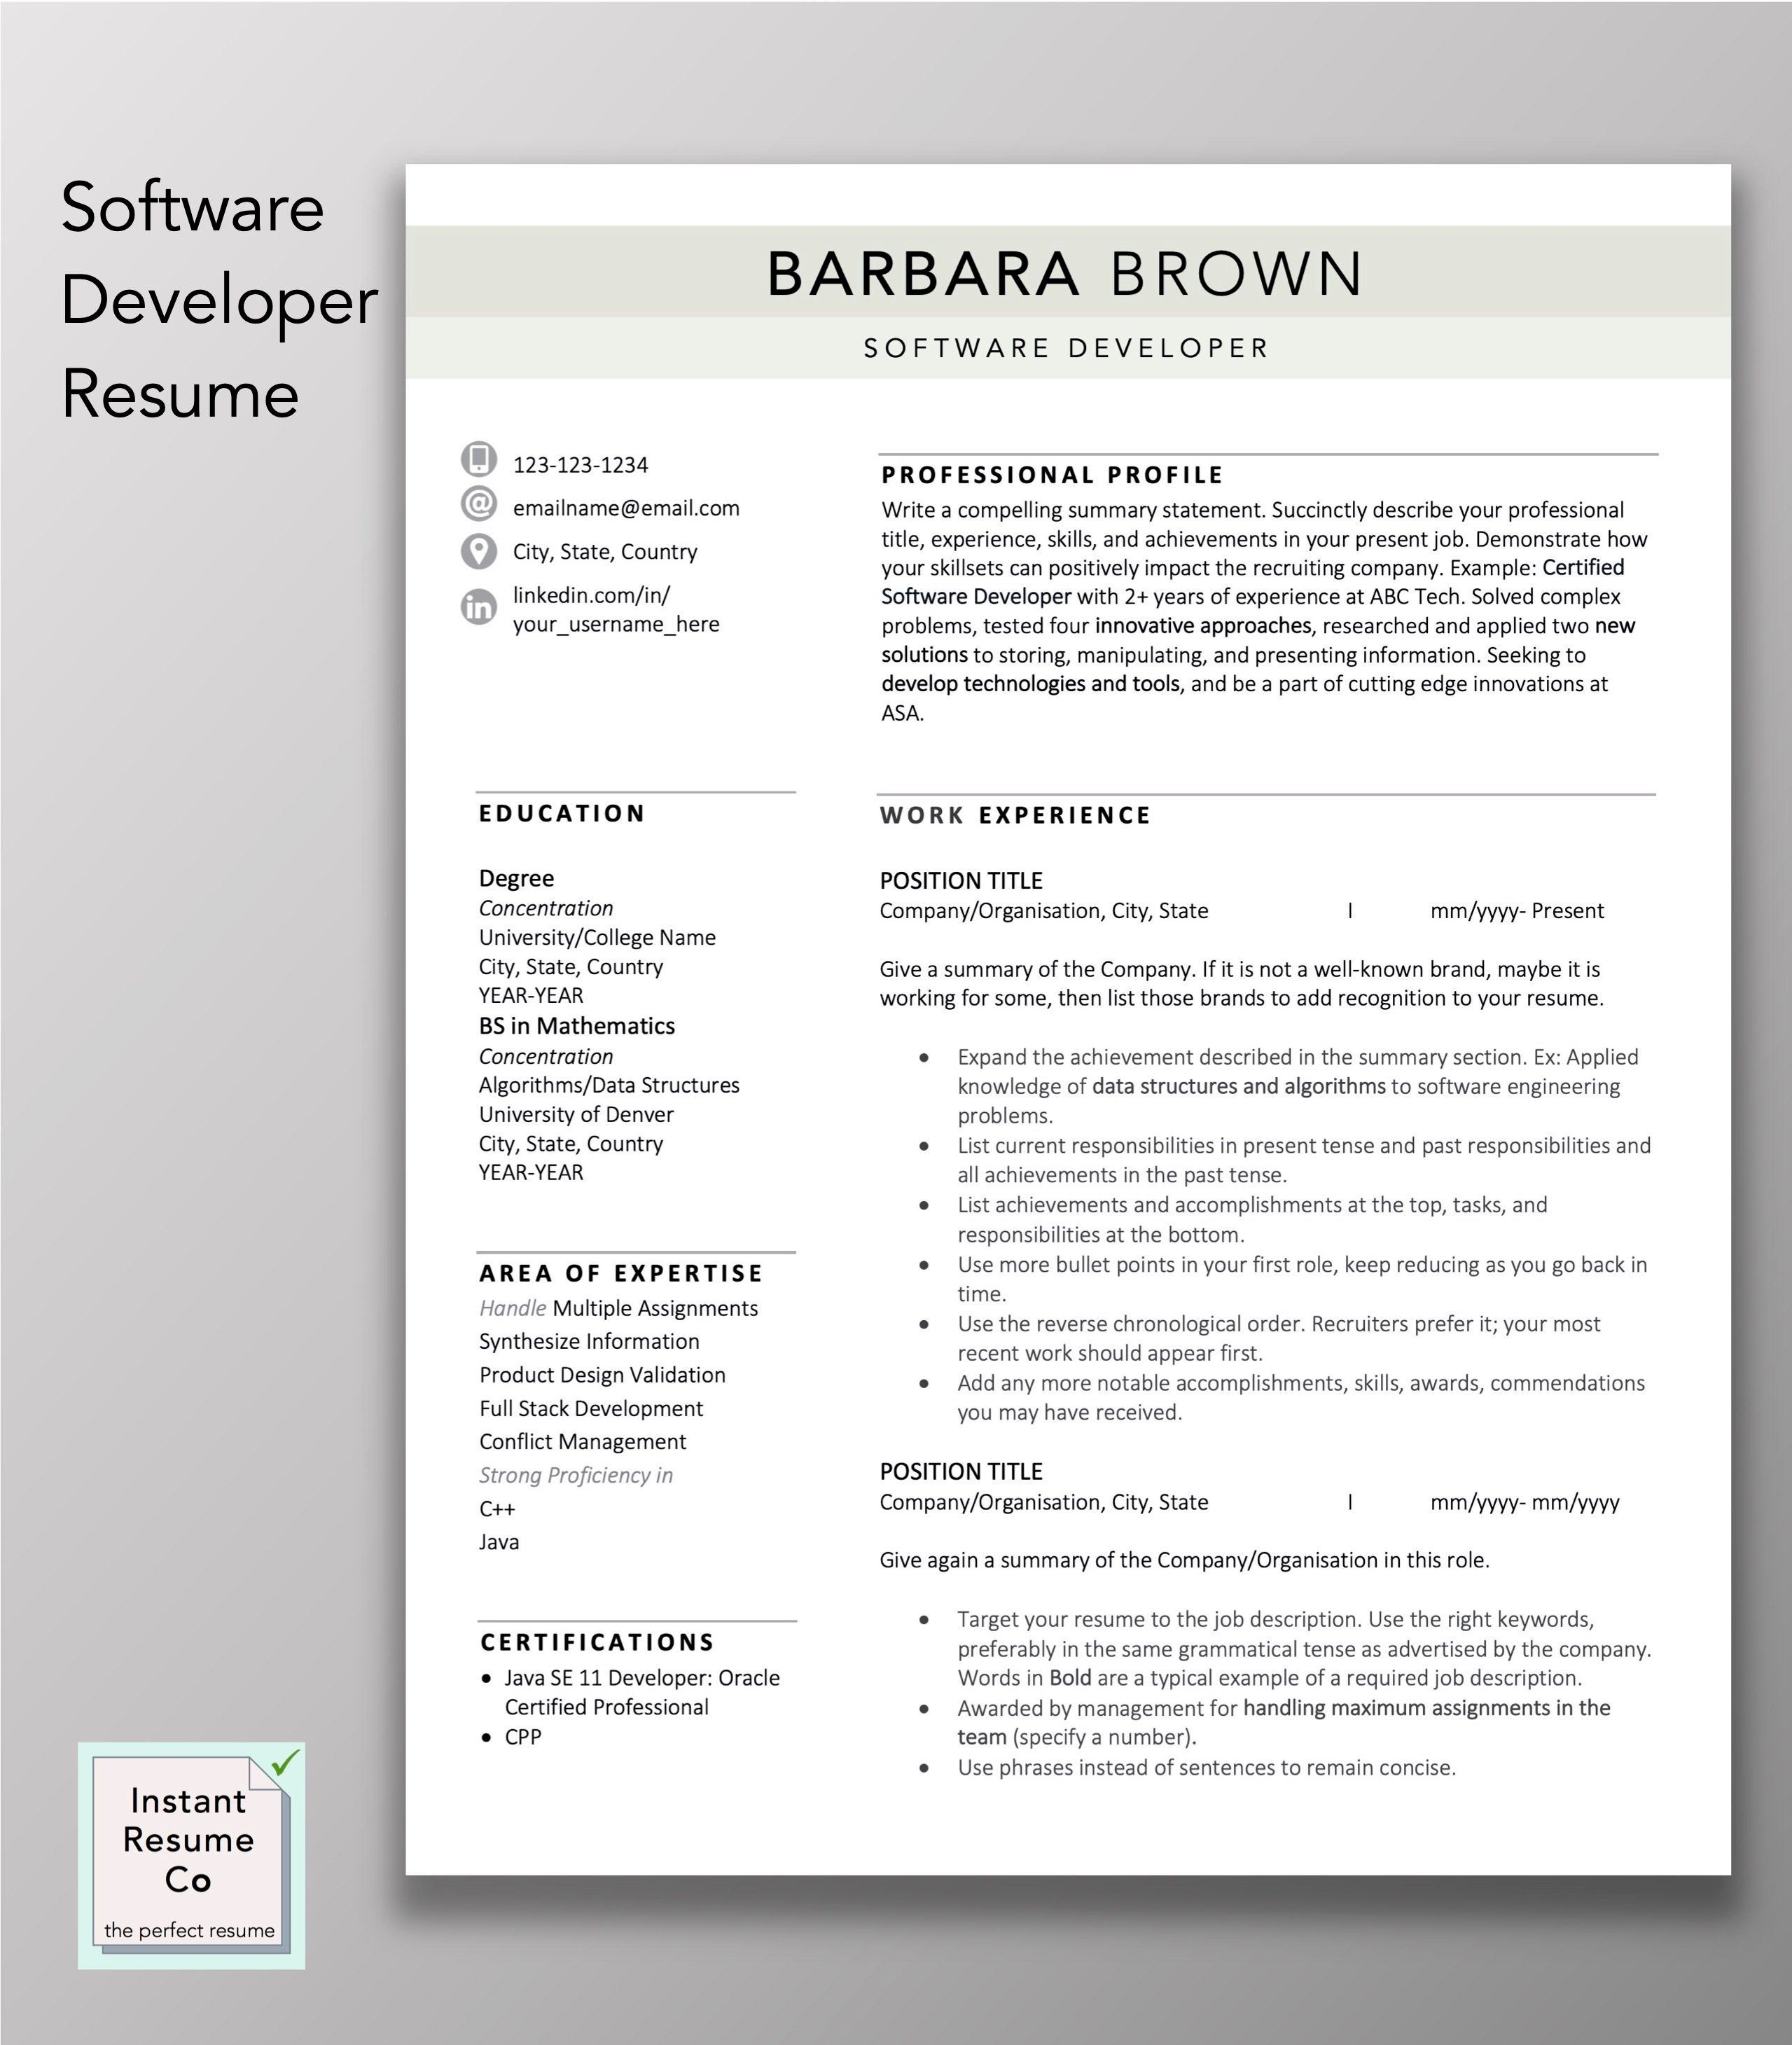 Software Developer Resume 2 Page Professional Resume Cv Etsy Resume Cv Template Word Software Development